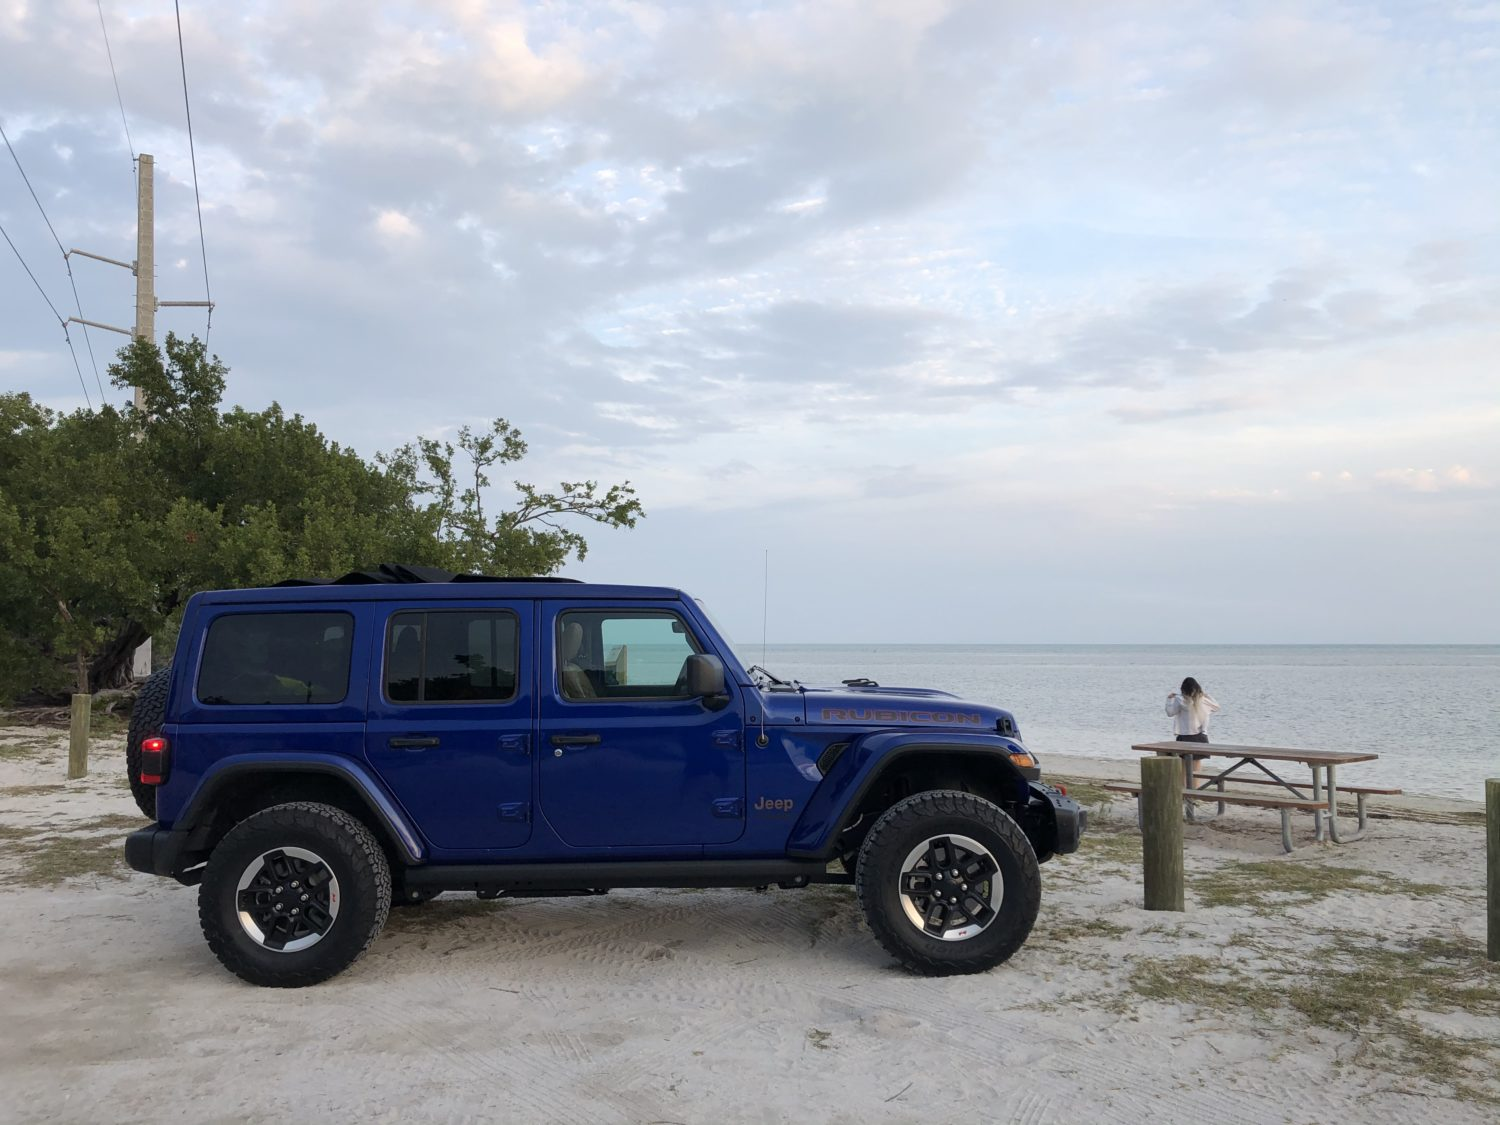 2020 Jeep Wrangler Unlimited Rubicon Review The Price Of Torque Motor Illustrated